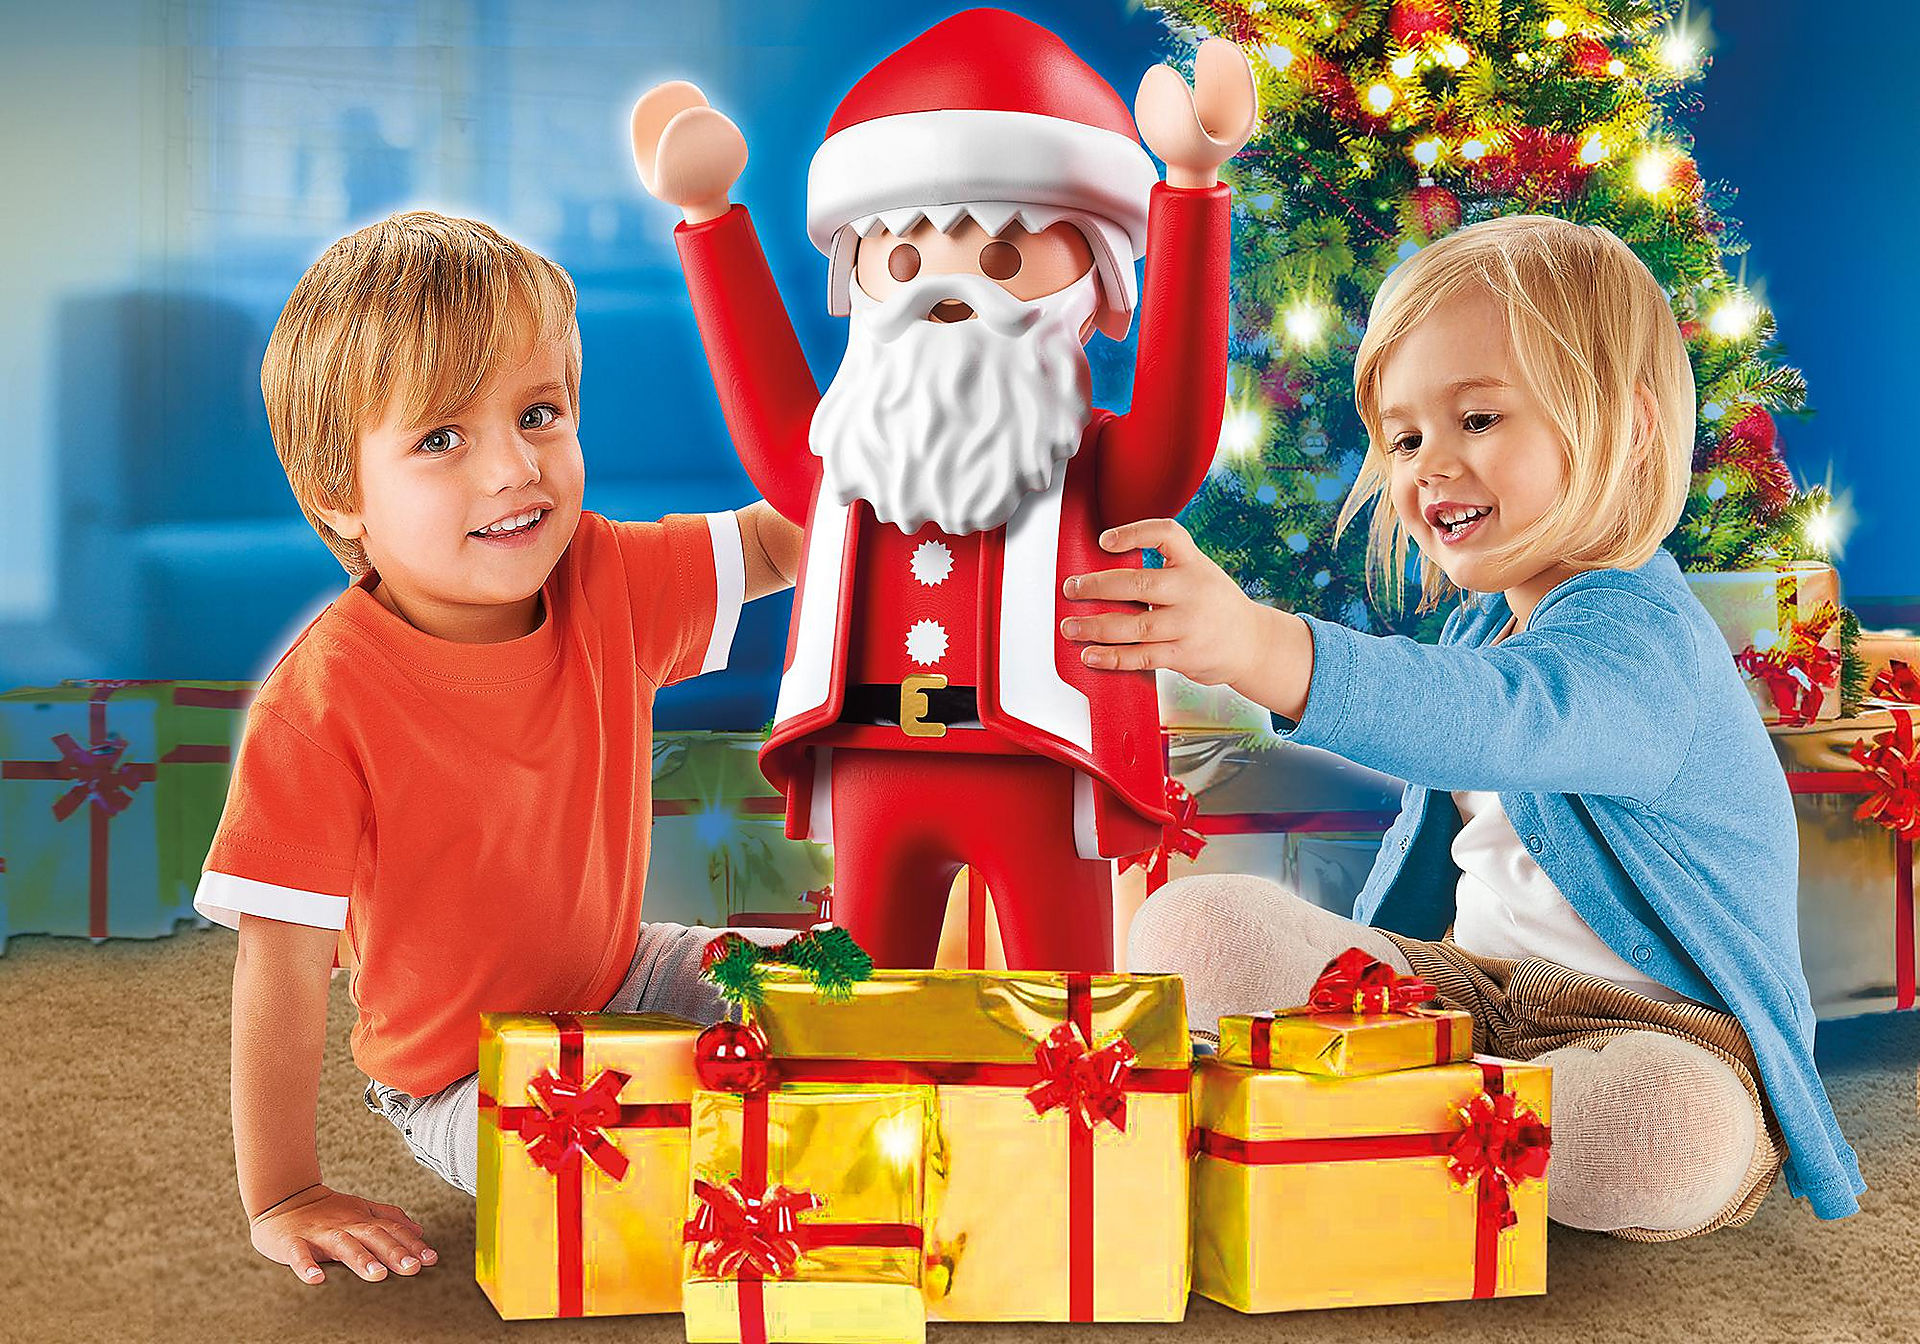 6629 PLAYMOBIL Babbo Natale giocattolo zoom image1